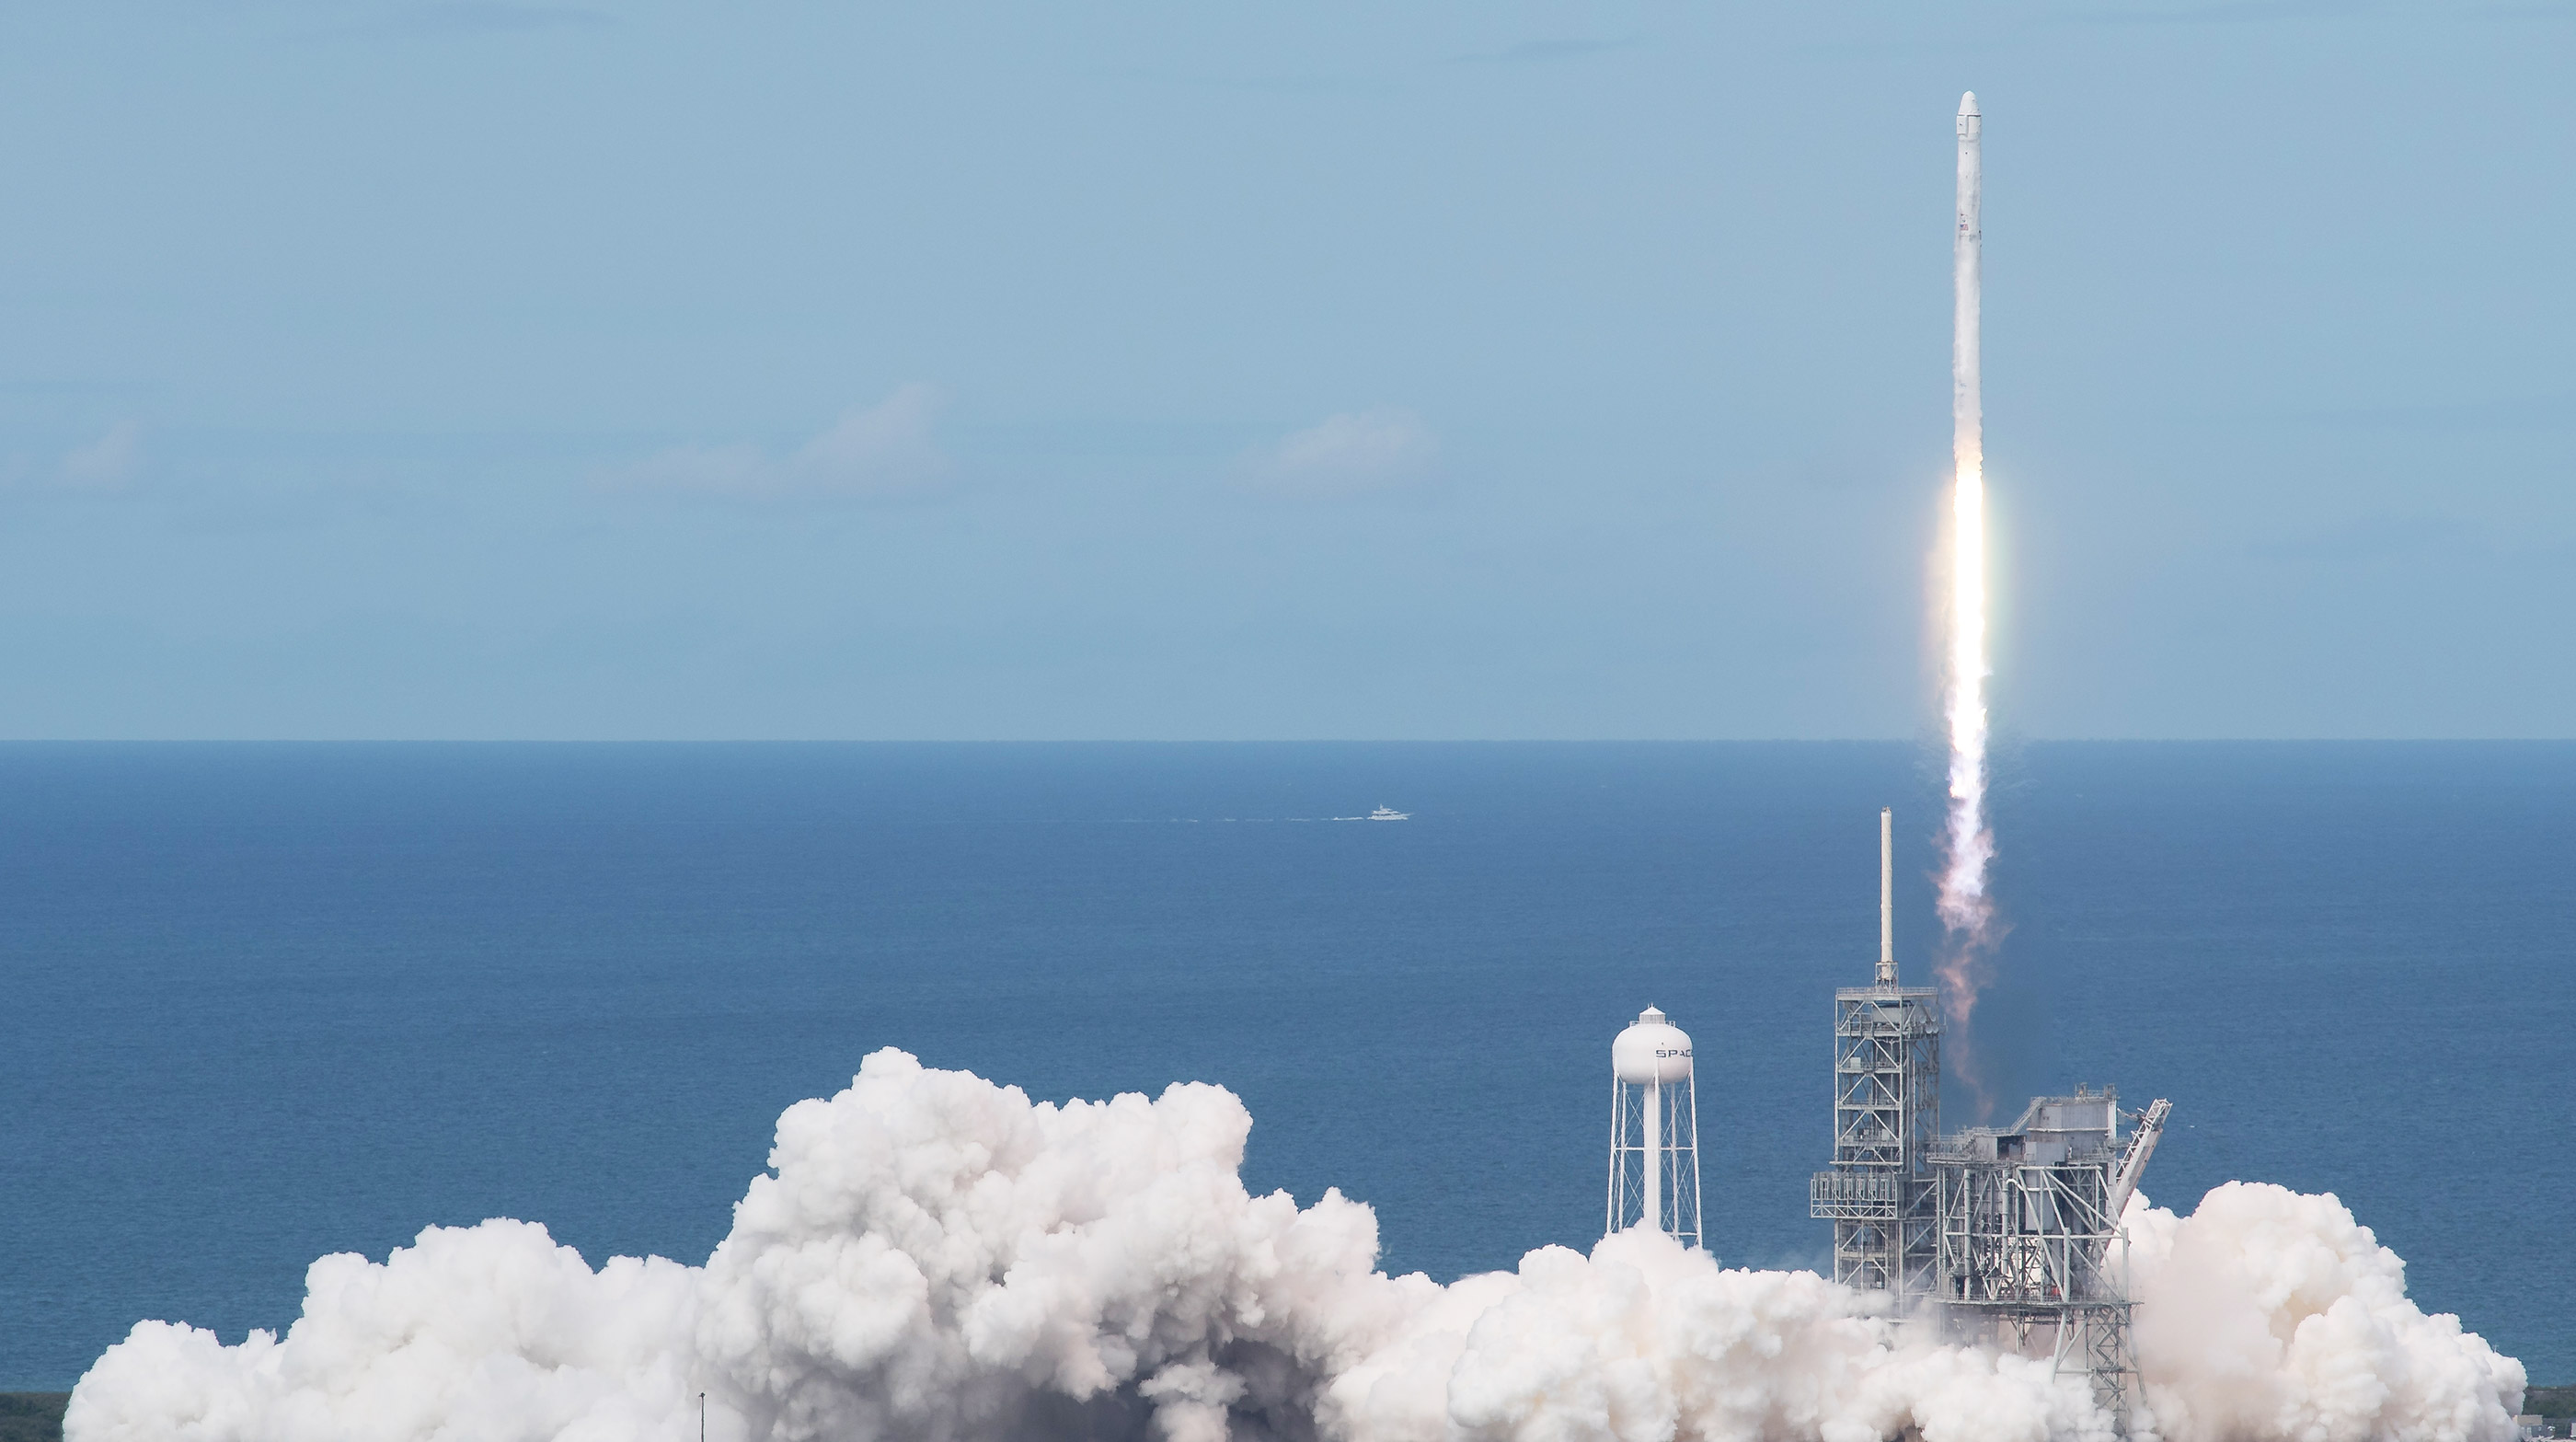 SpaceX CRS-11 launches from Launch Pad 39A at Kennedy Space Center